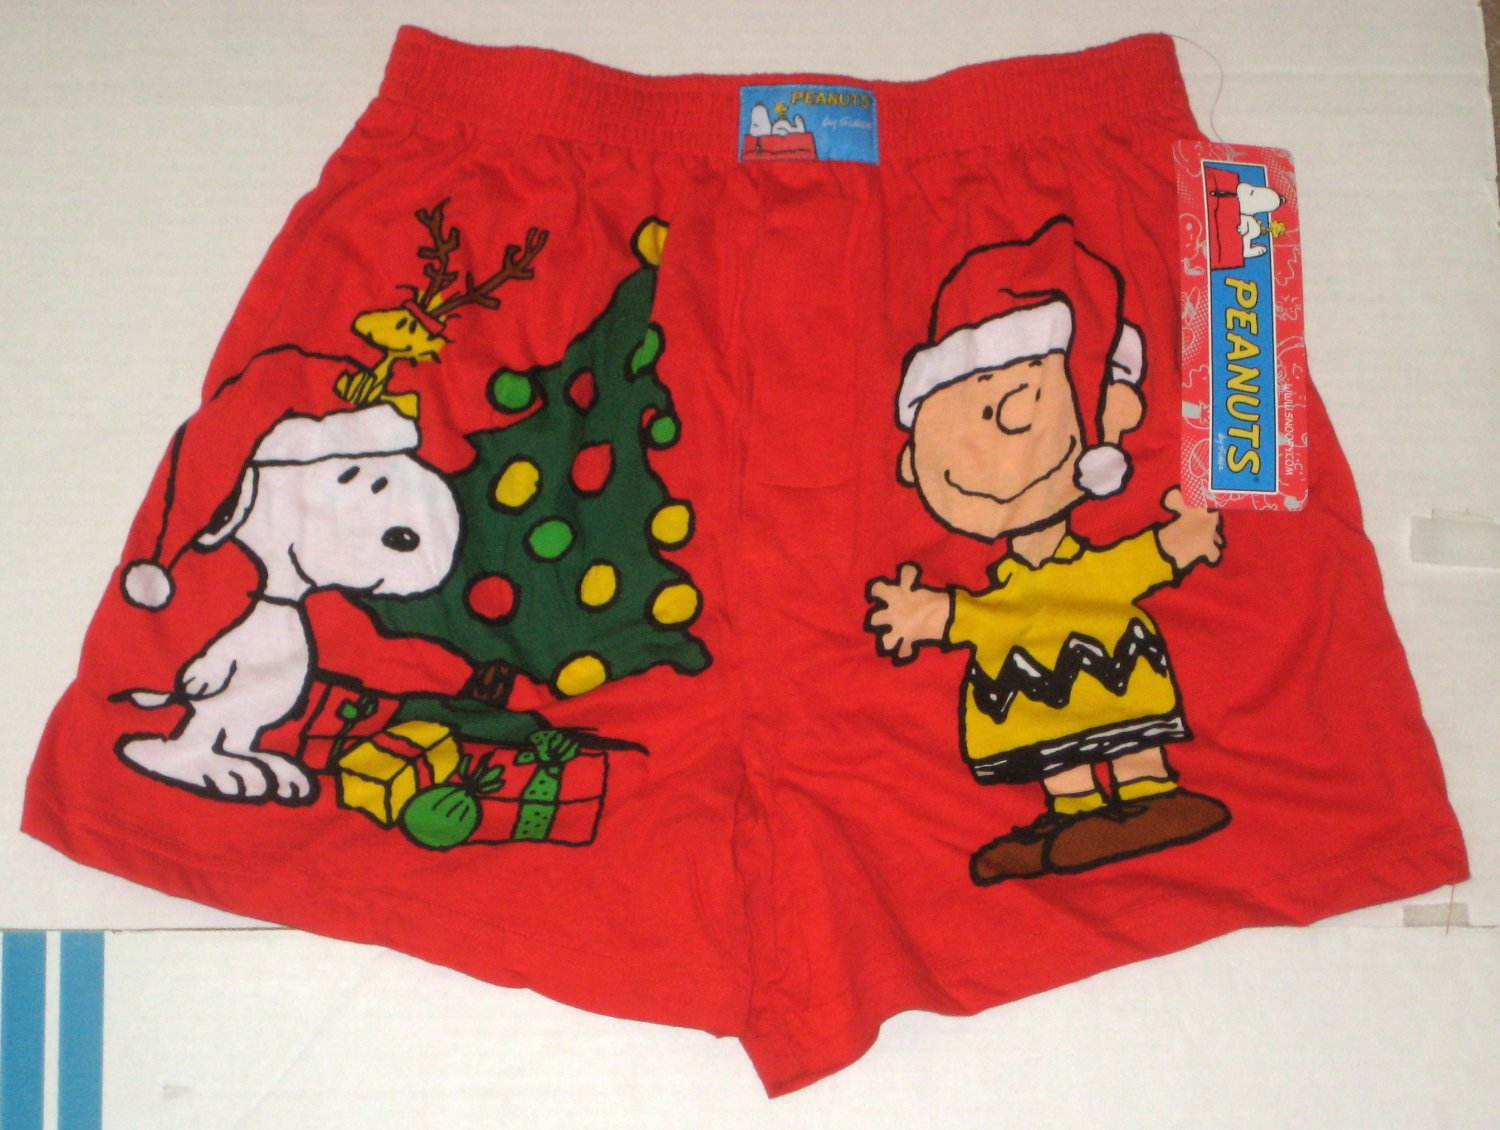 Find great deals on eBay for snoopy boxer shorts. Shop with confidence.